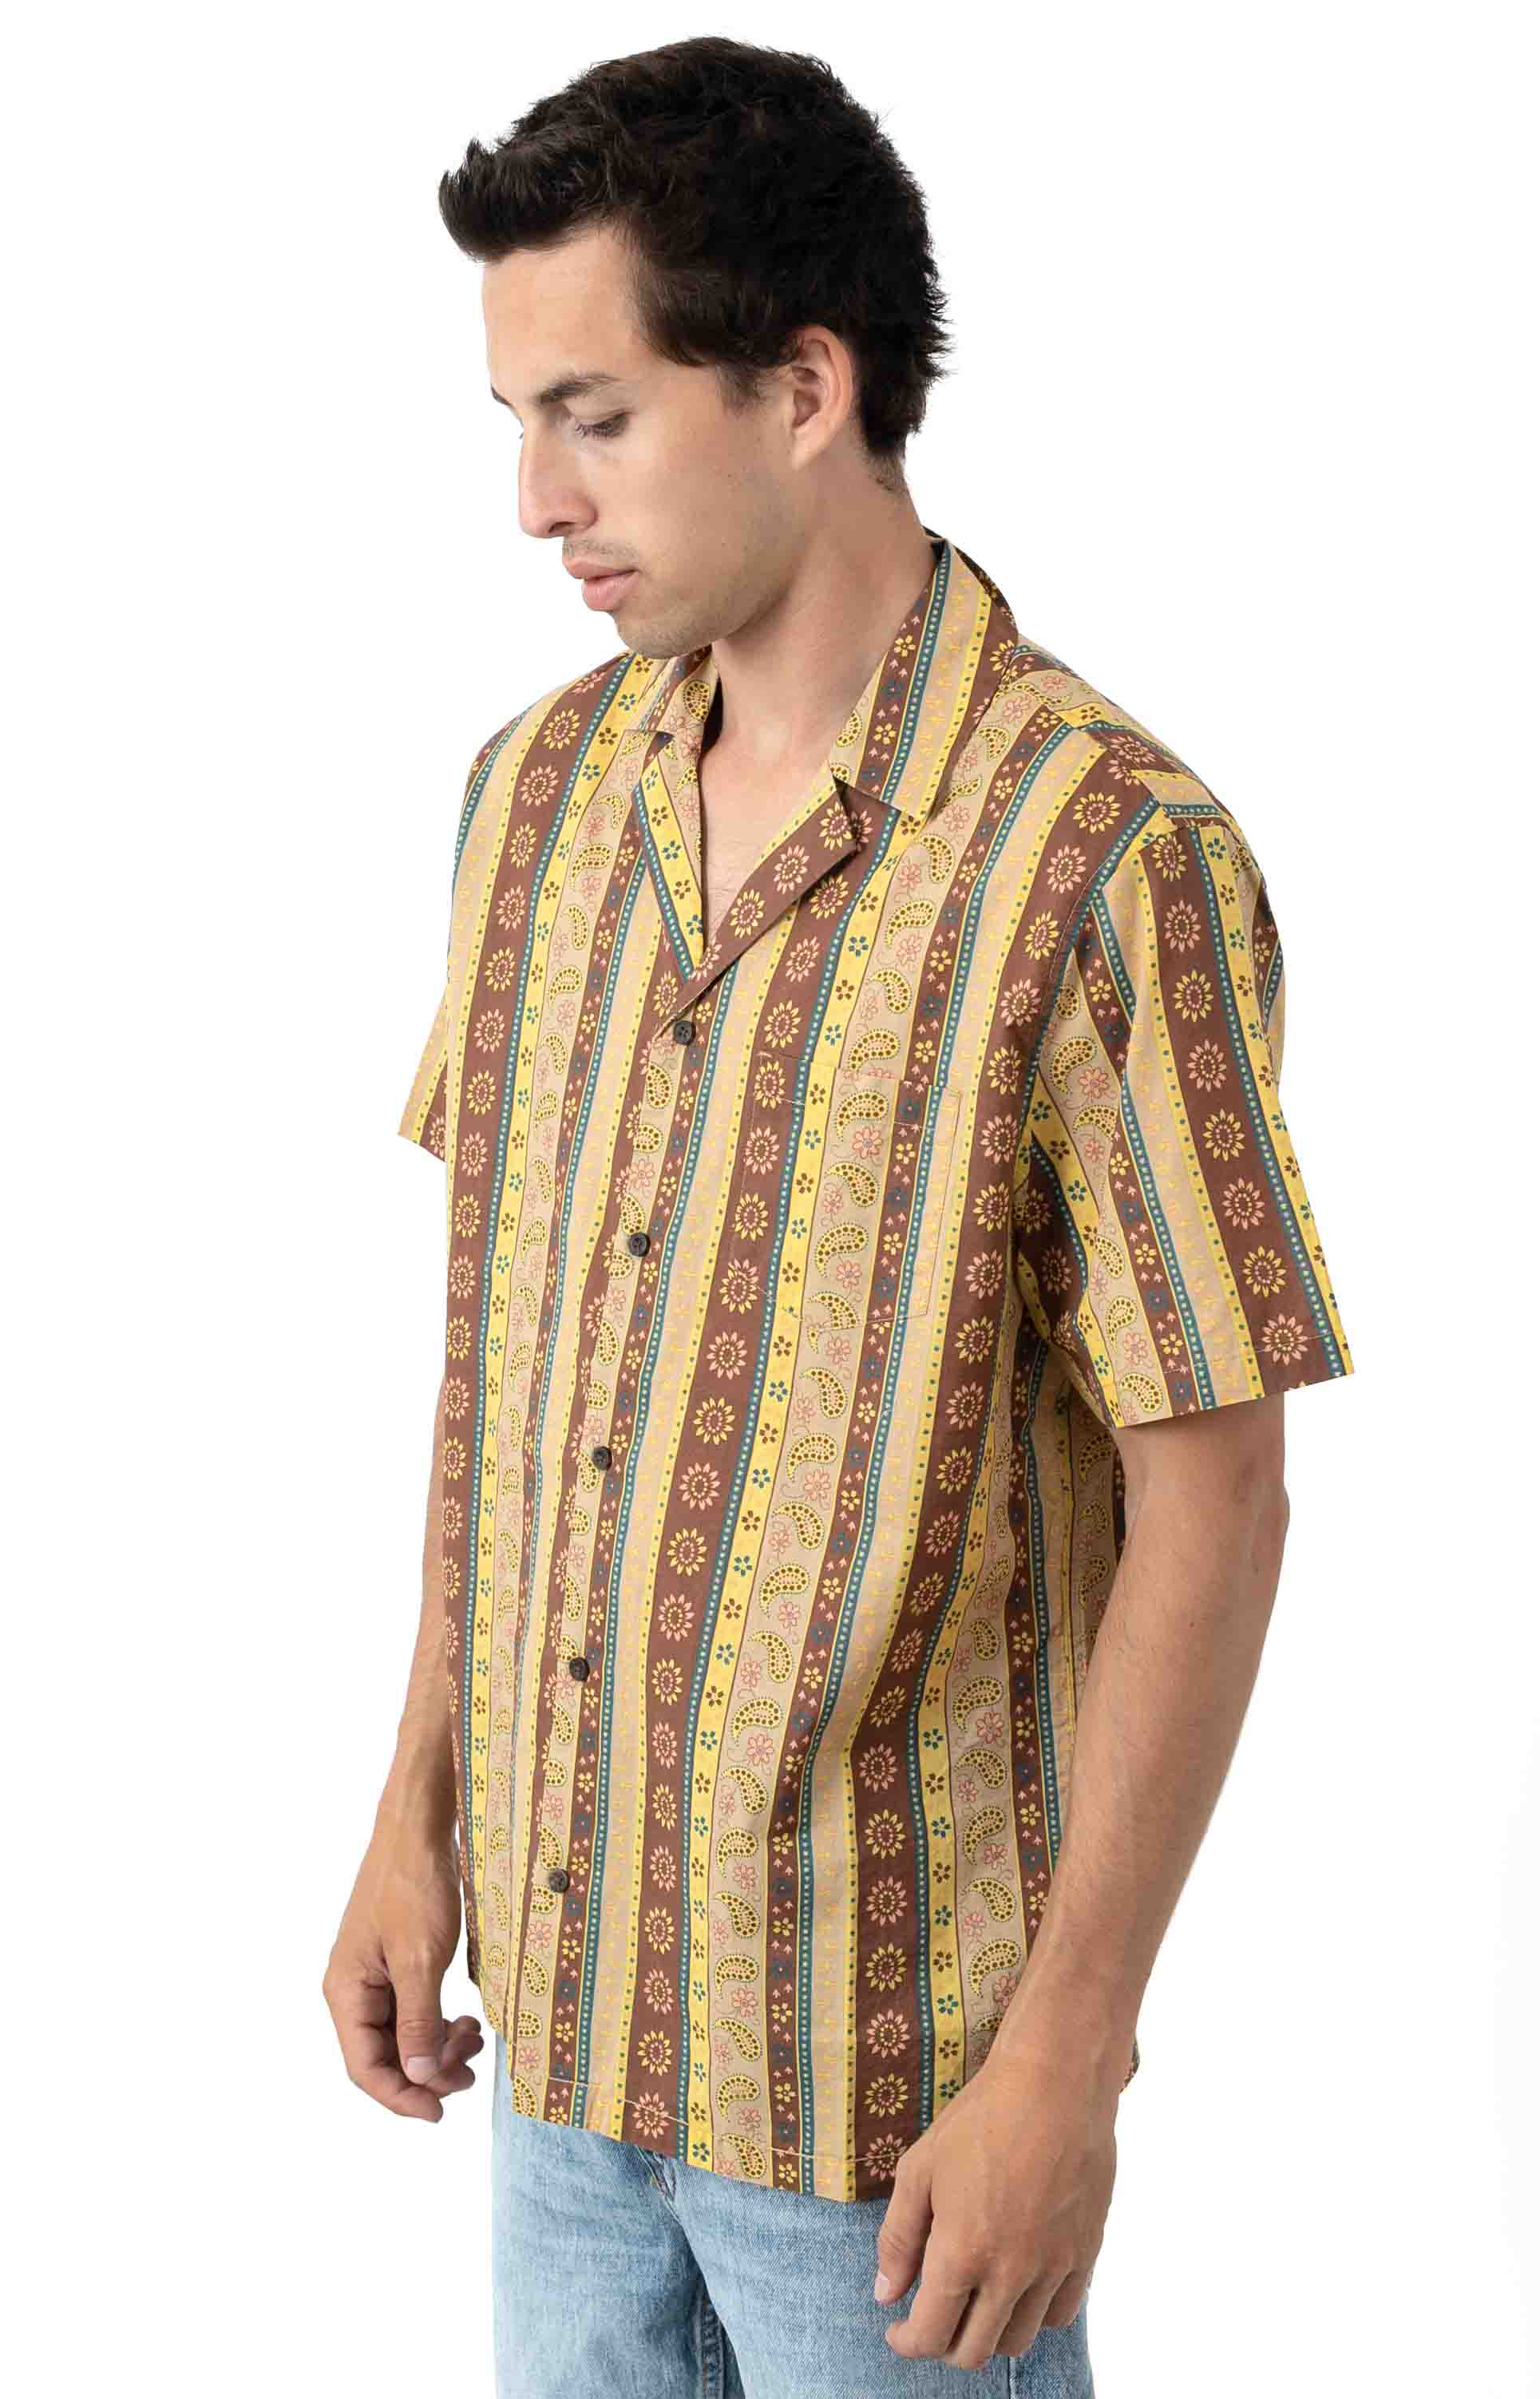 Bloomsbury S/S Button-Up Shirt - Ginger  2